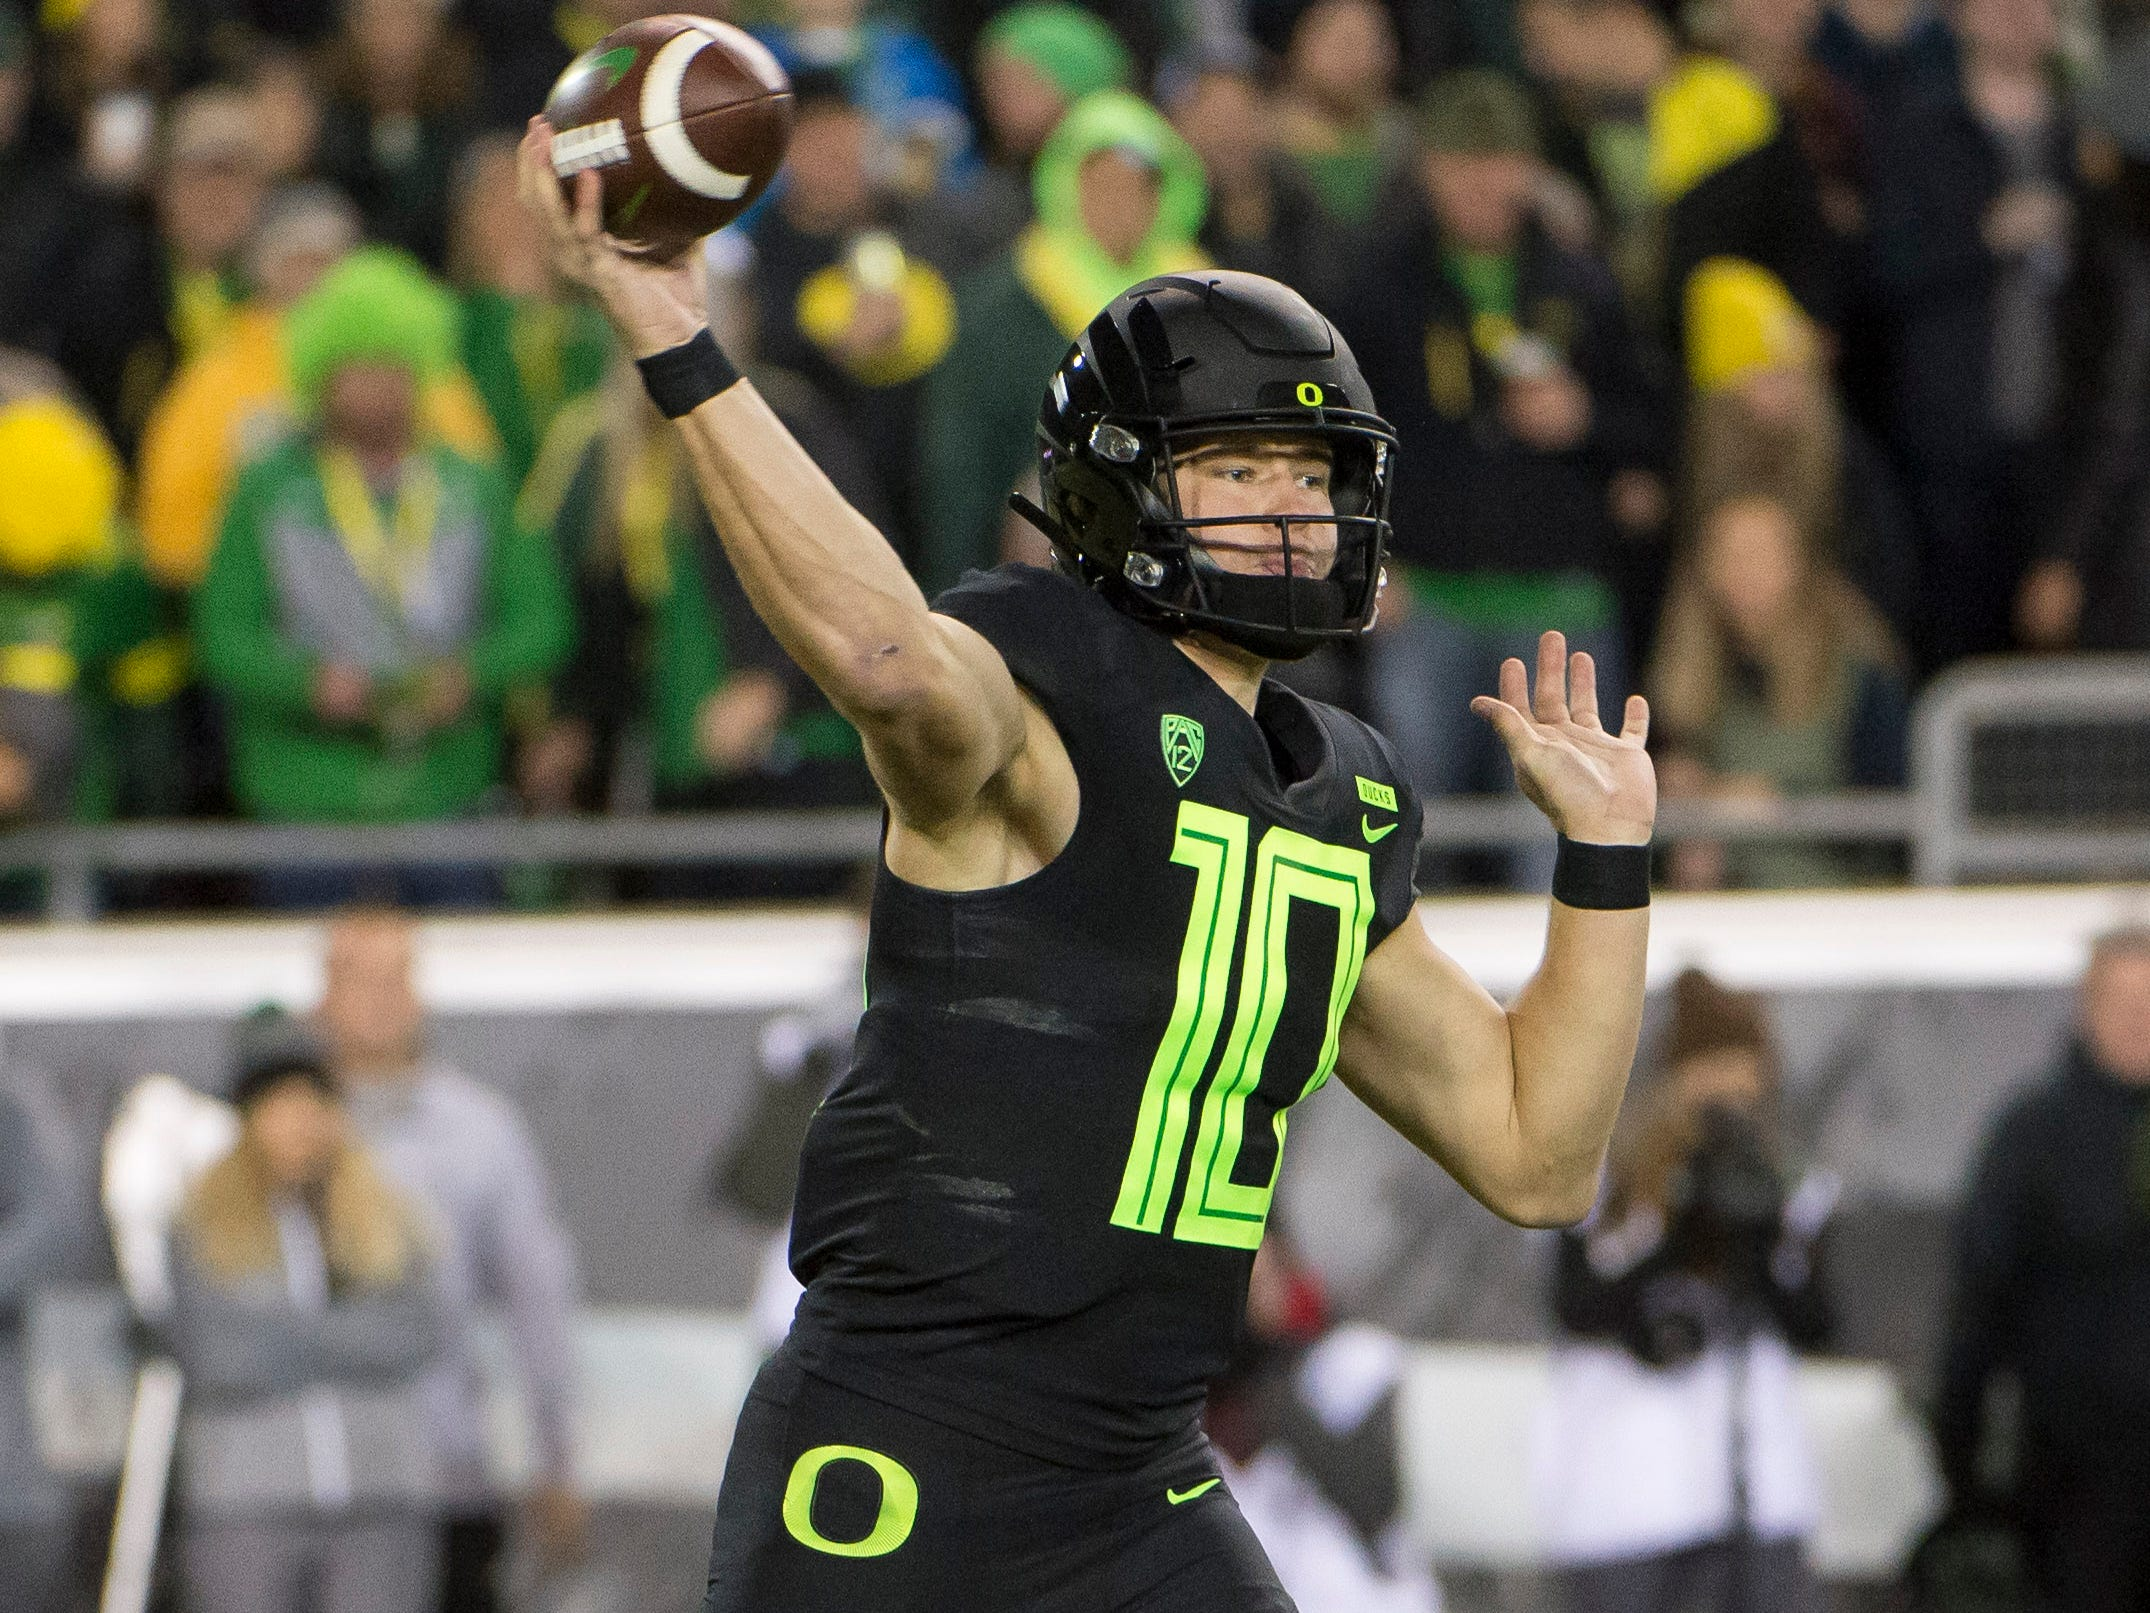 Nov 17, 2018; Eugene, OR, USA; Oregon Ducks quarterback Justin Herbert (10) throws a pass during the first half against the Arizona State Sun Devils at Autzen Stadium. Mandatory Credit: Troy Wayrynen-USA TODAY Sports